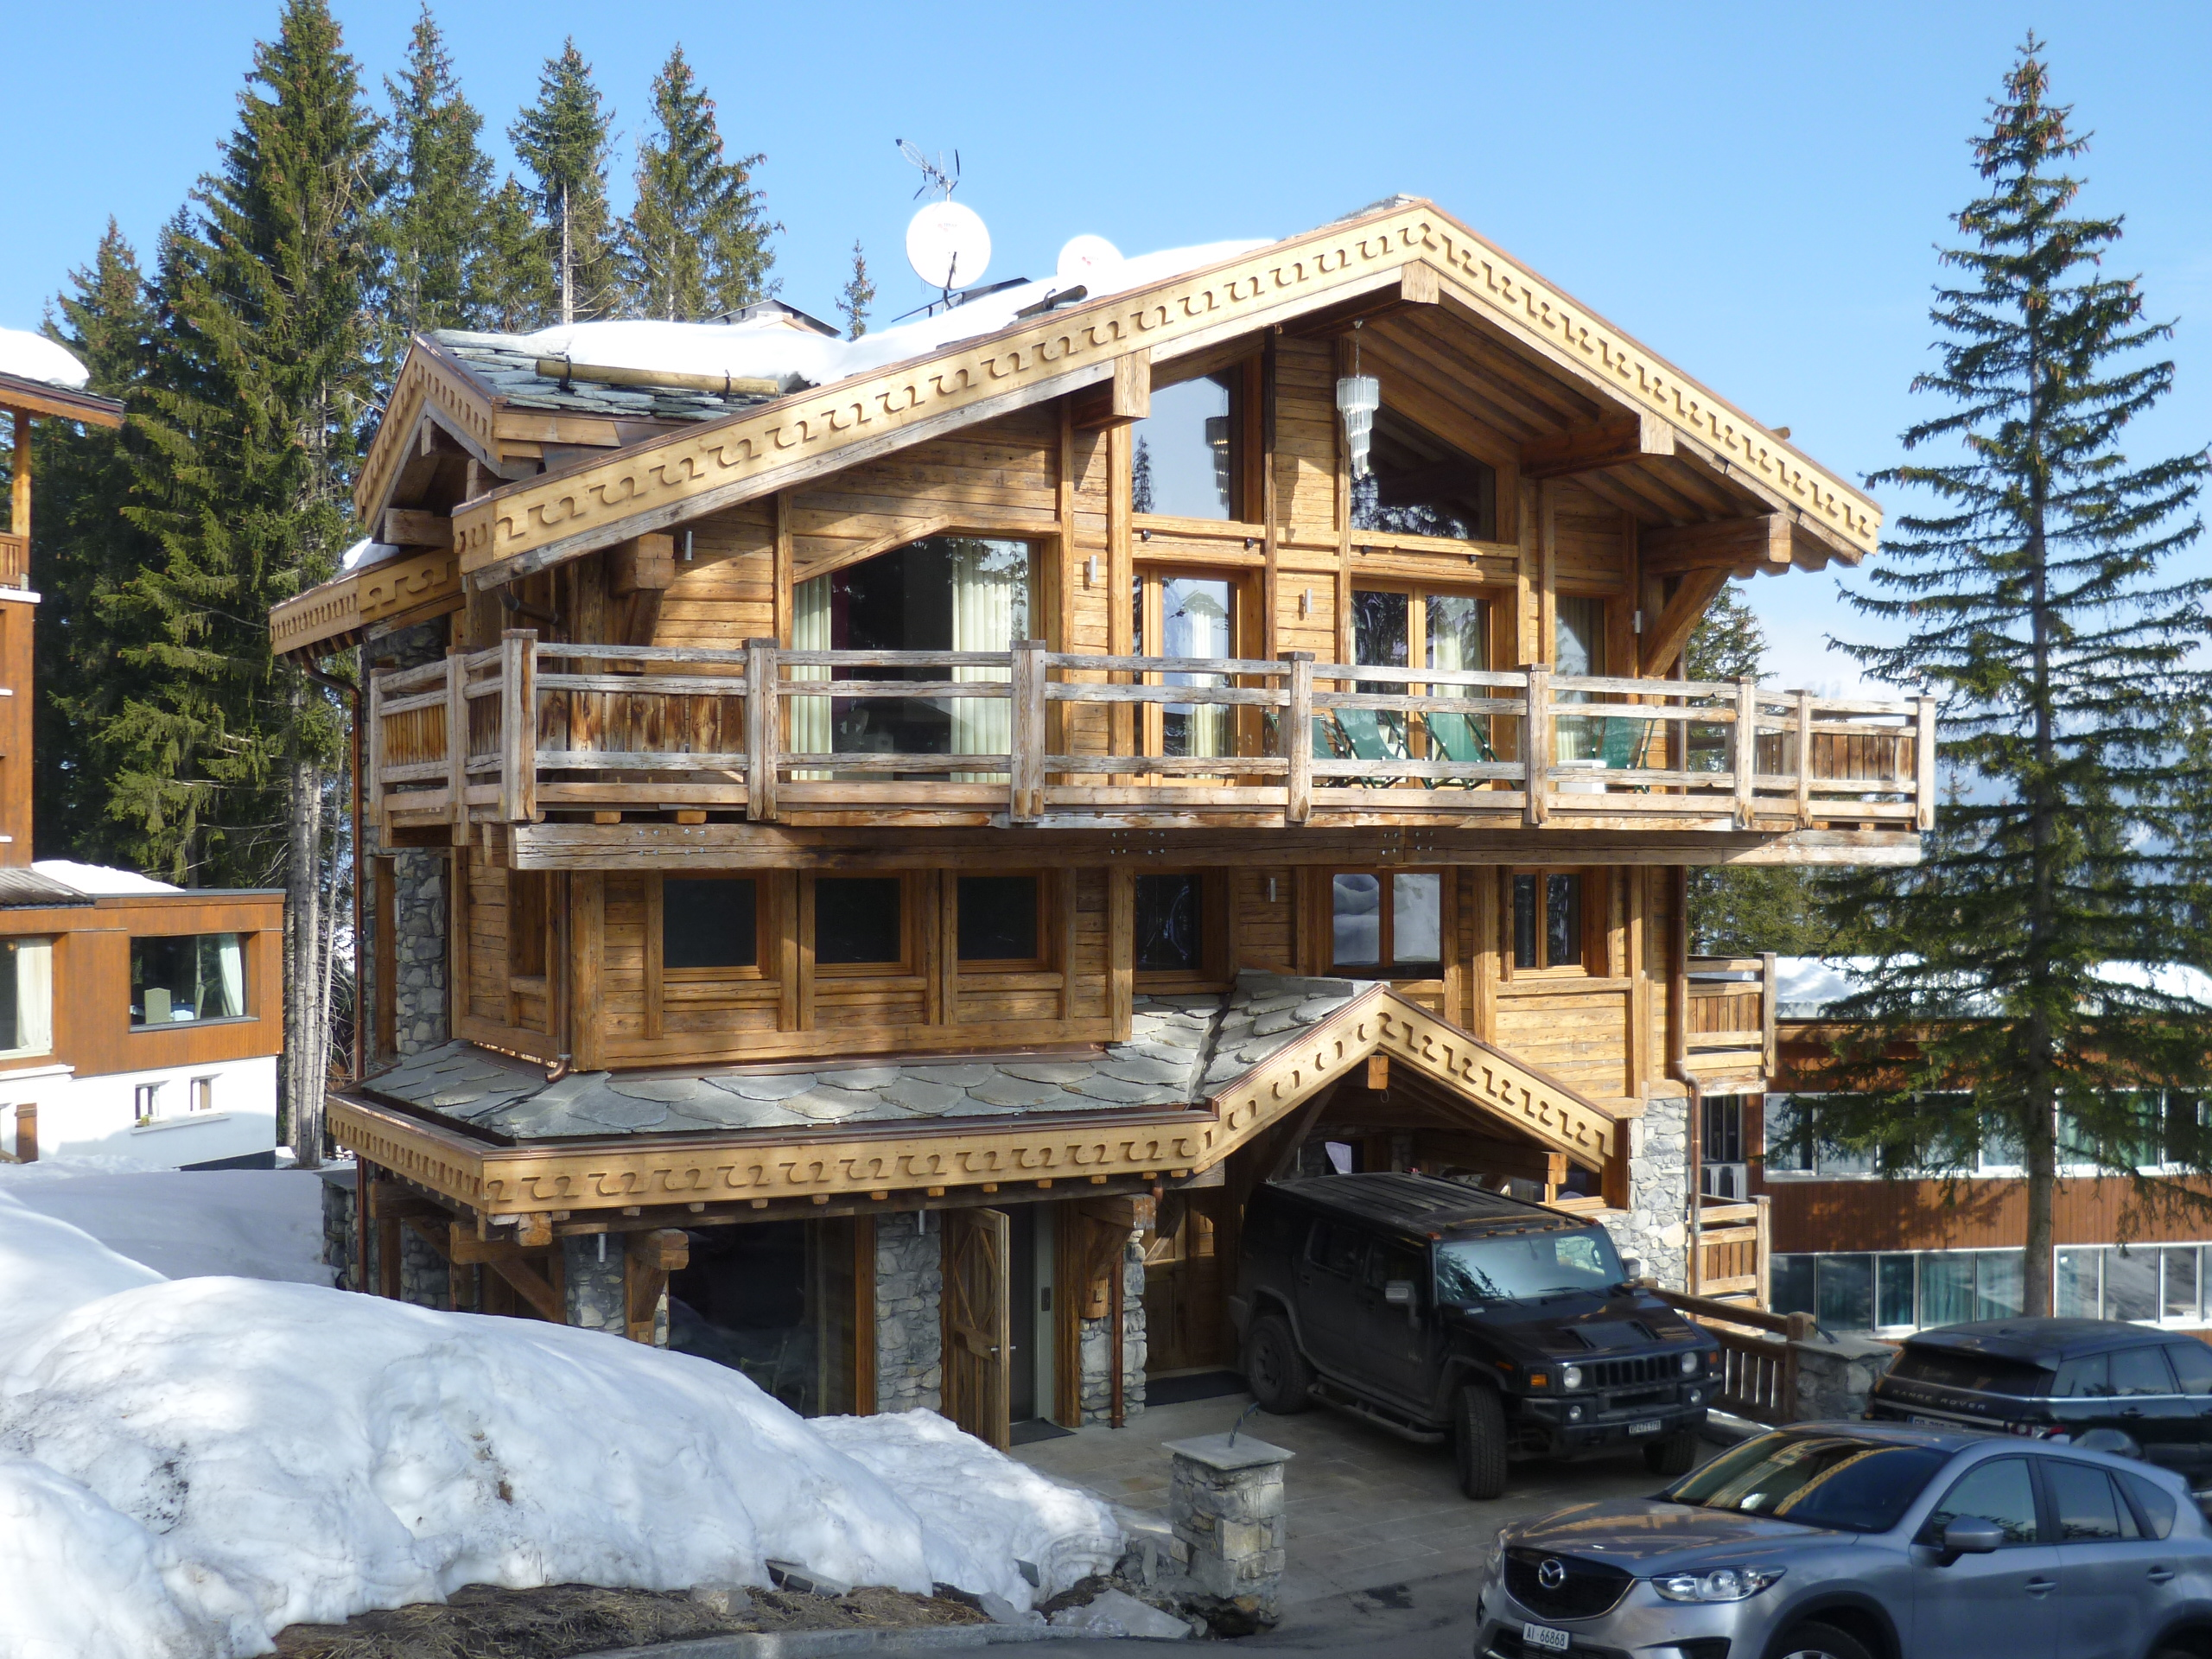 Chalet owens thura architecture architecte dplg for Architecte courchevel